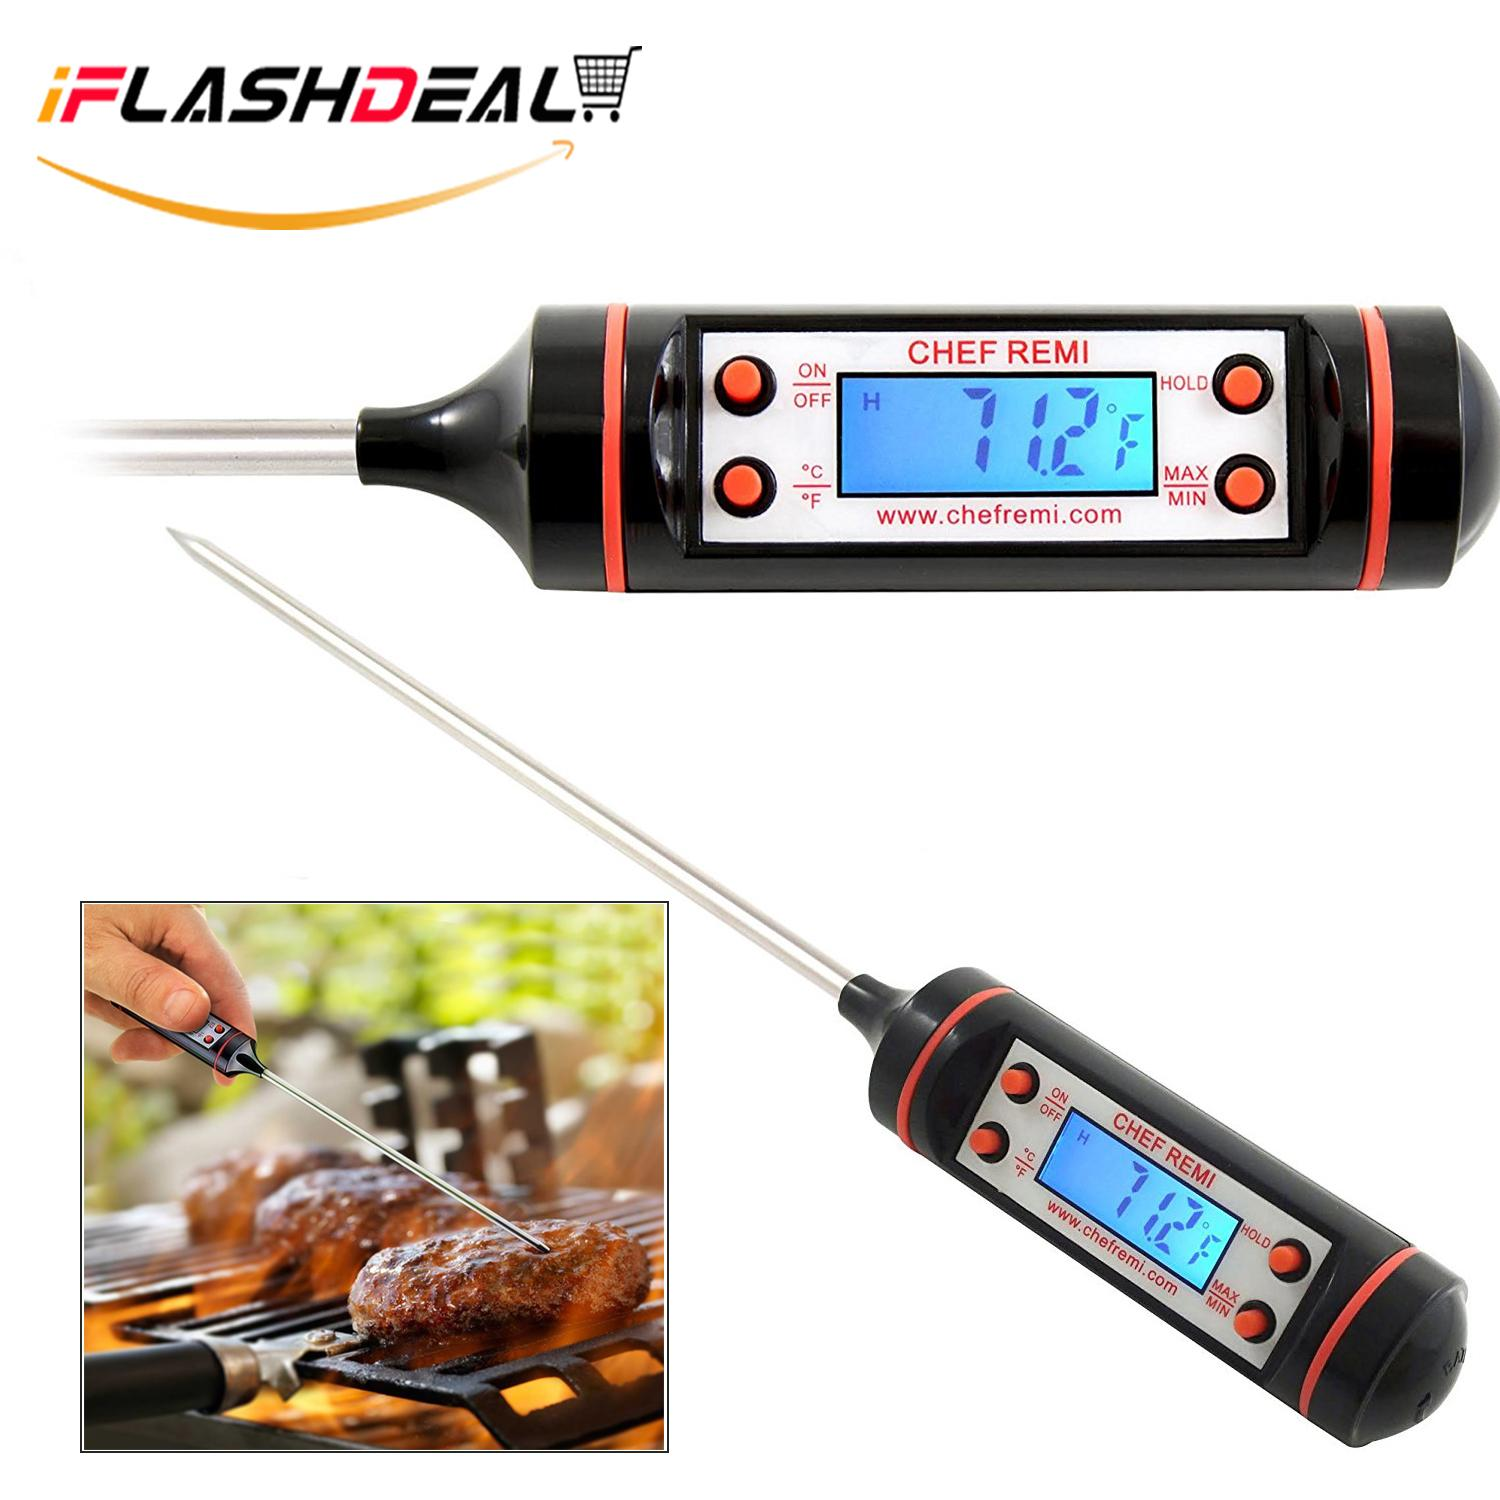 Iflashdeal Digital Food Meat Thermometer Kitchen Food Probe For Cooking Bbq By Iflashdeal.